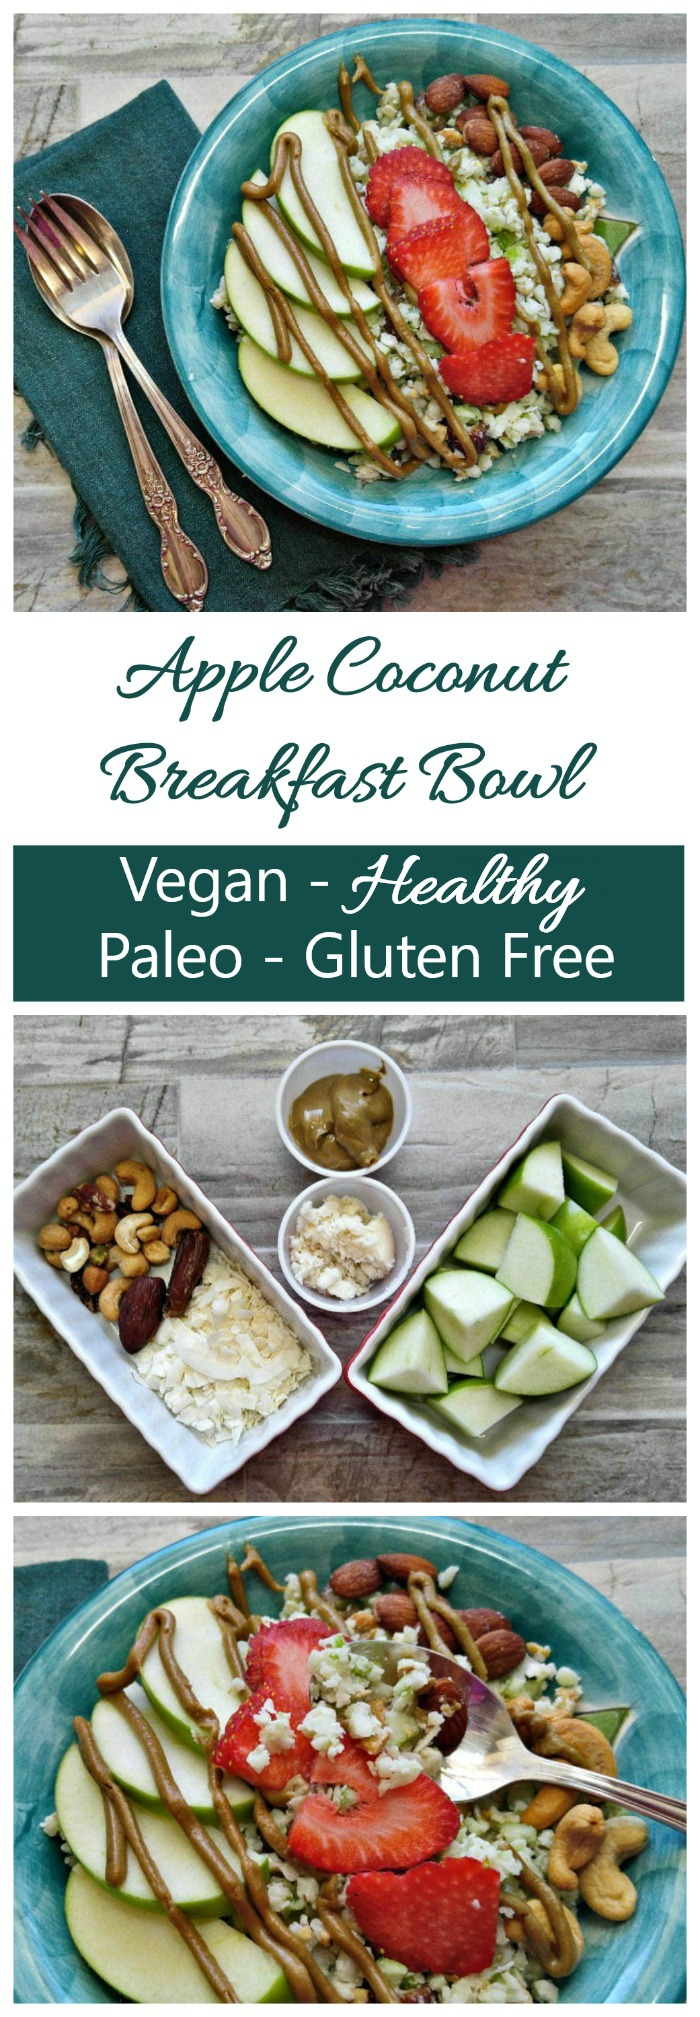 This healthy Apple Coconut Breakfast bowl has just a few ingredients and is ready in just minutes. #whole30breakfastbowl #whole30recipes